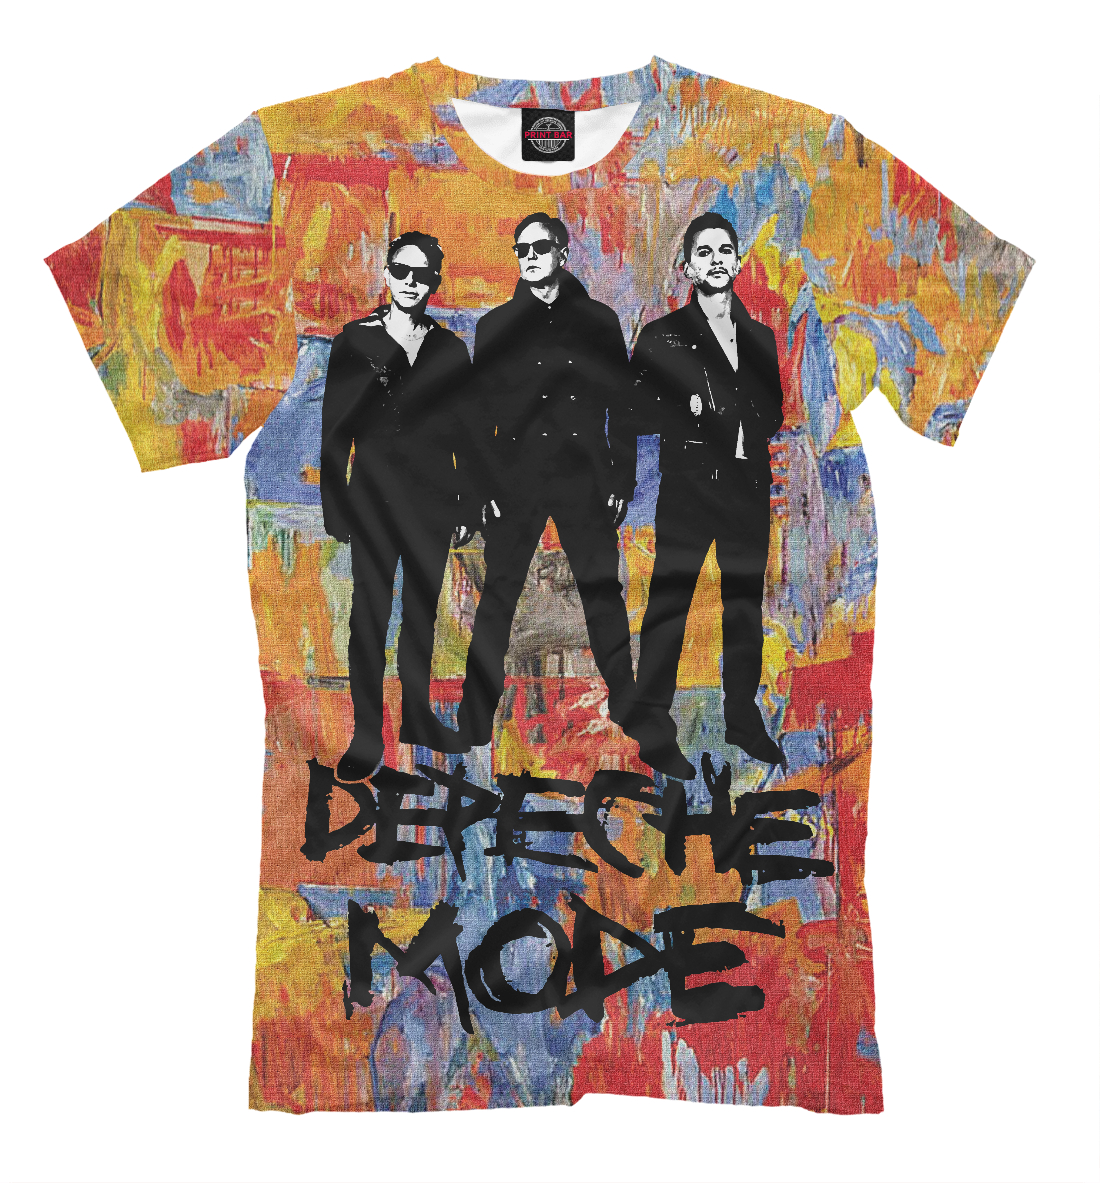 Купить Depeche Mode, Printbar, Футболки, CLR-264116-fut-2